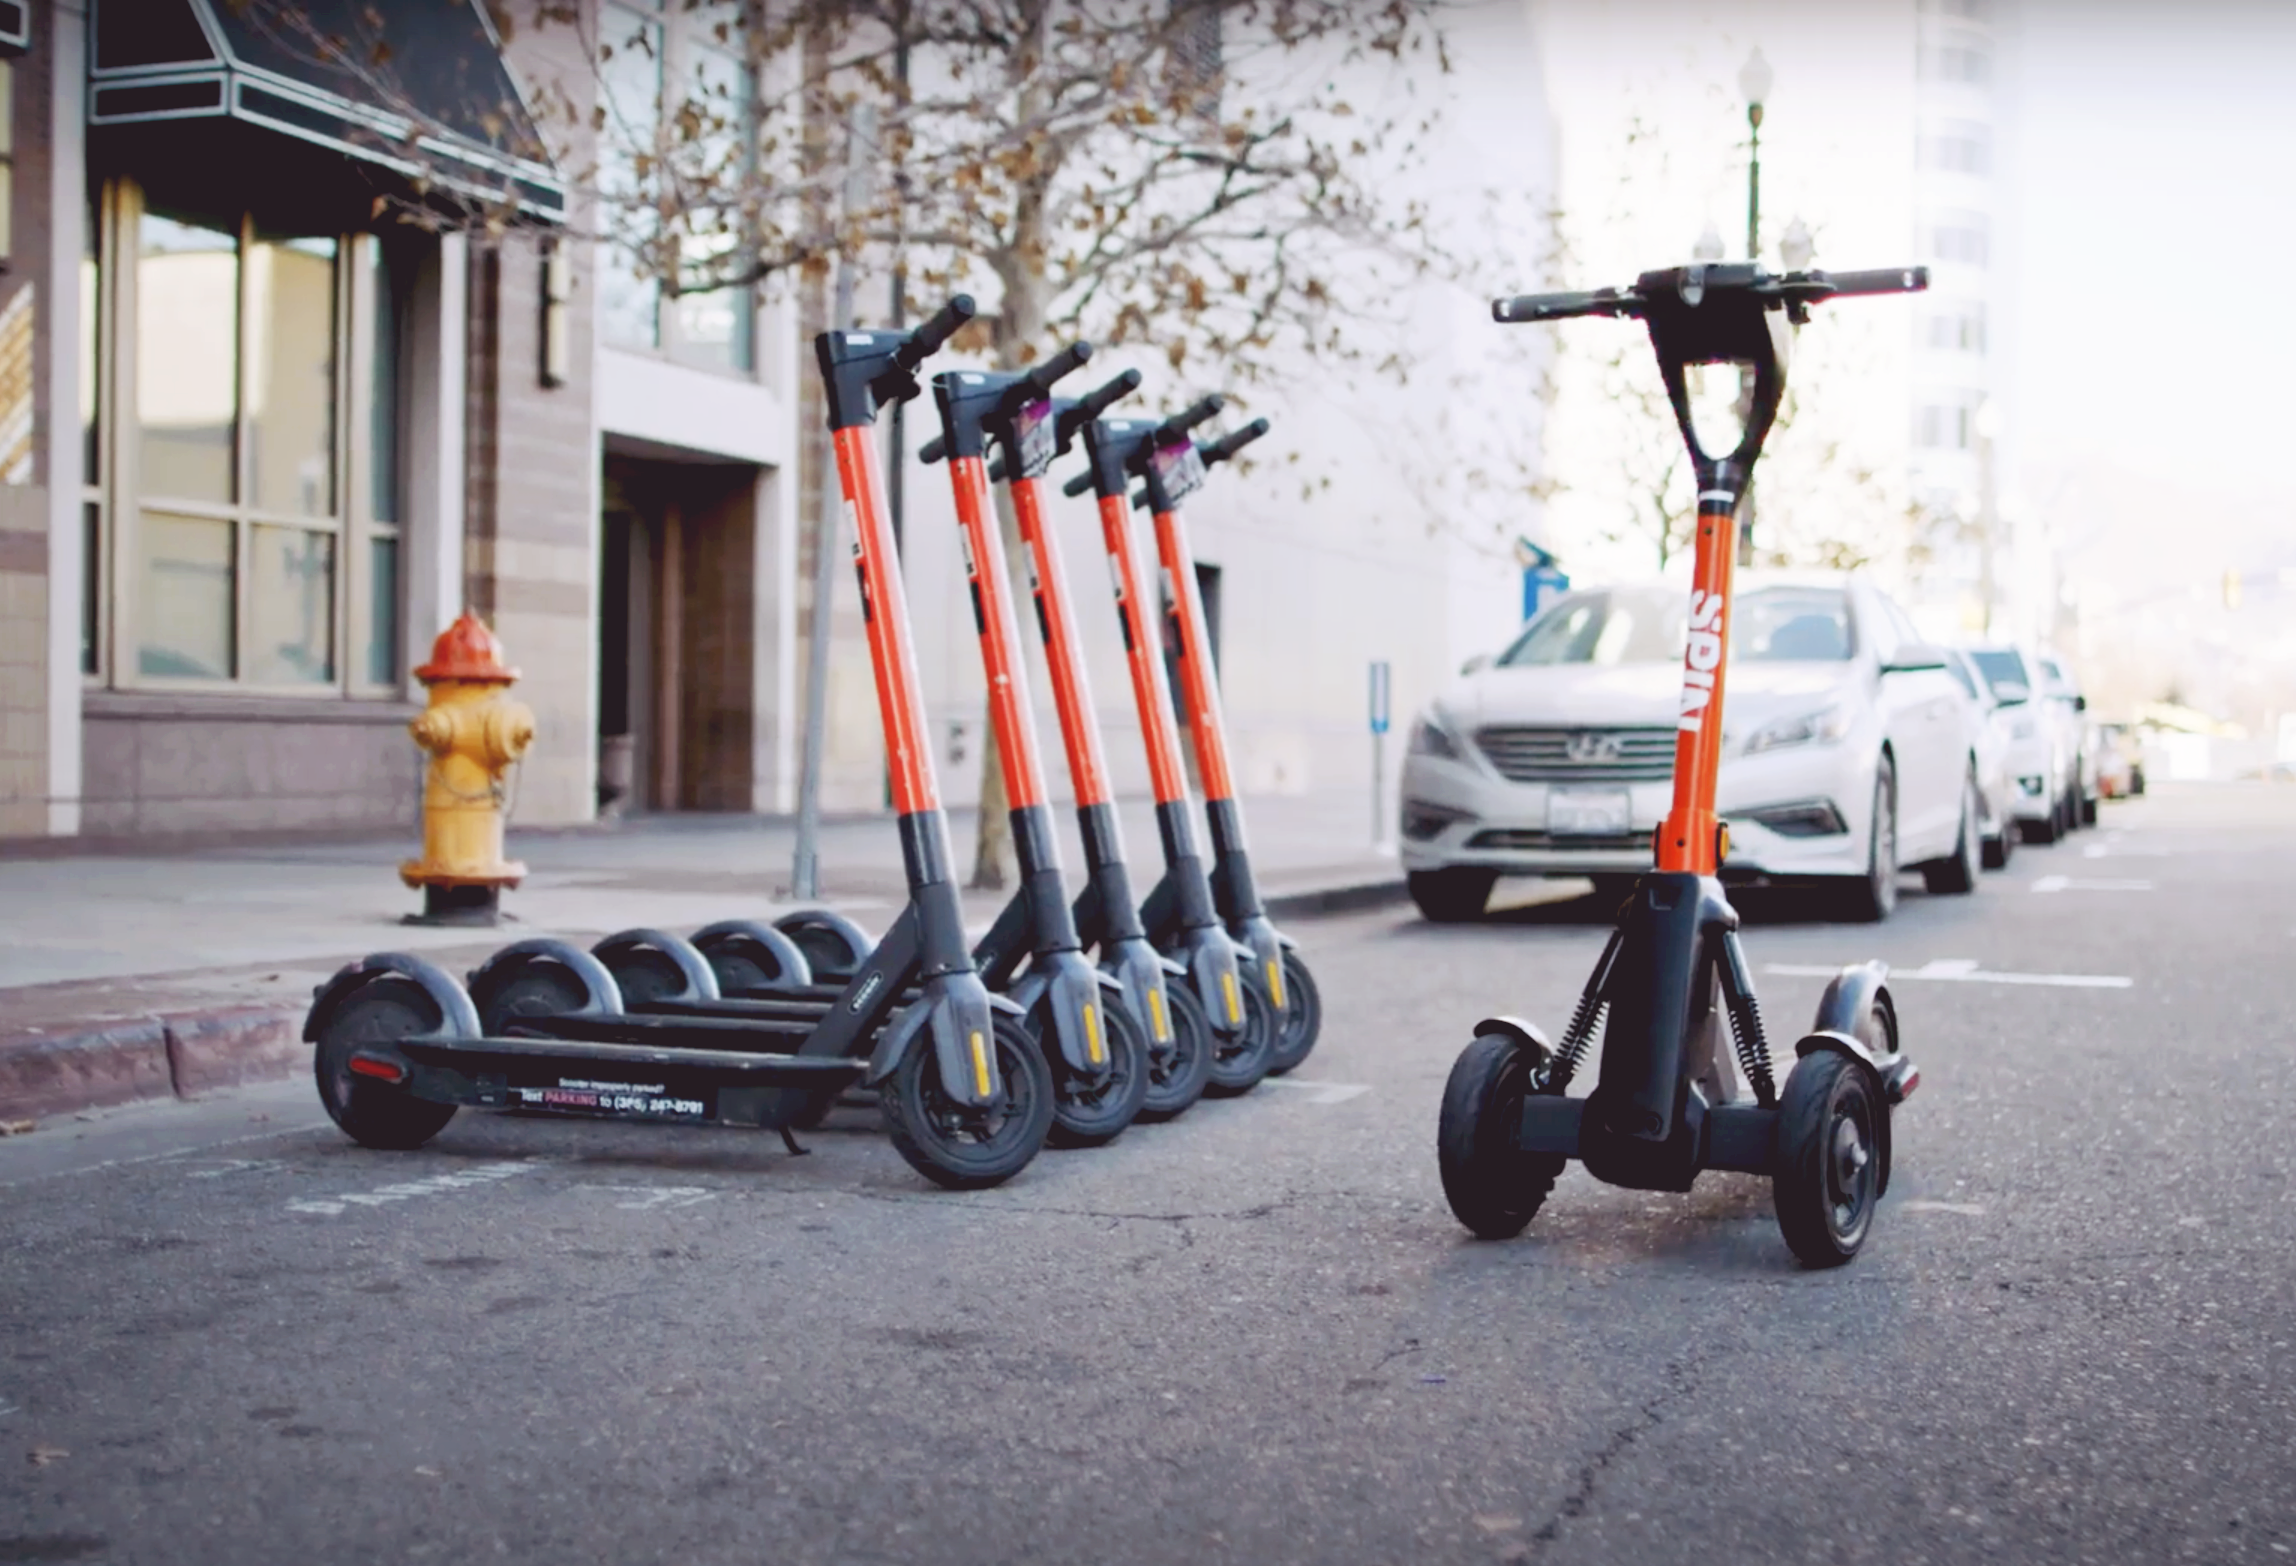 A three-wheeled Spin scooter in front of a row of original two-wheeled Spin scooters.